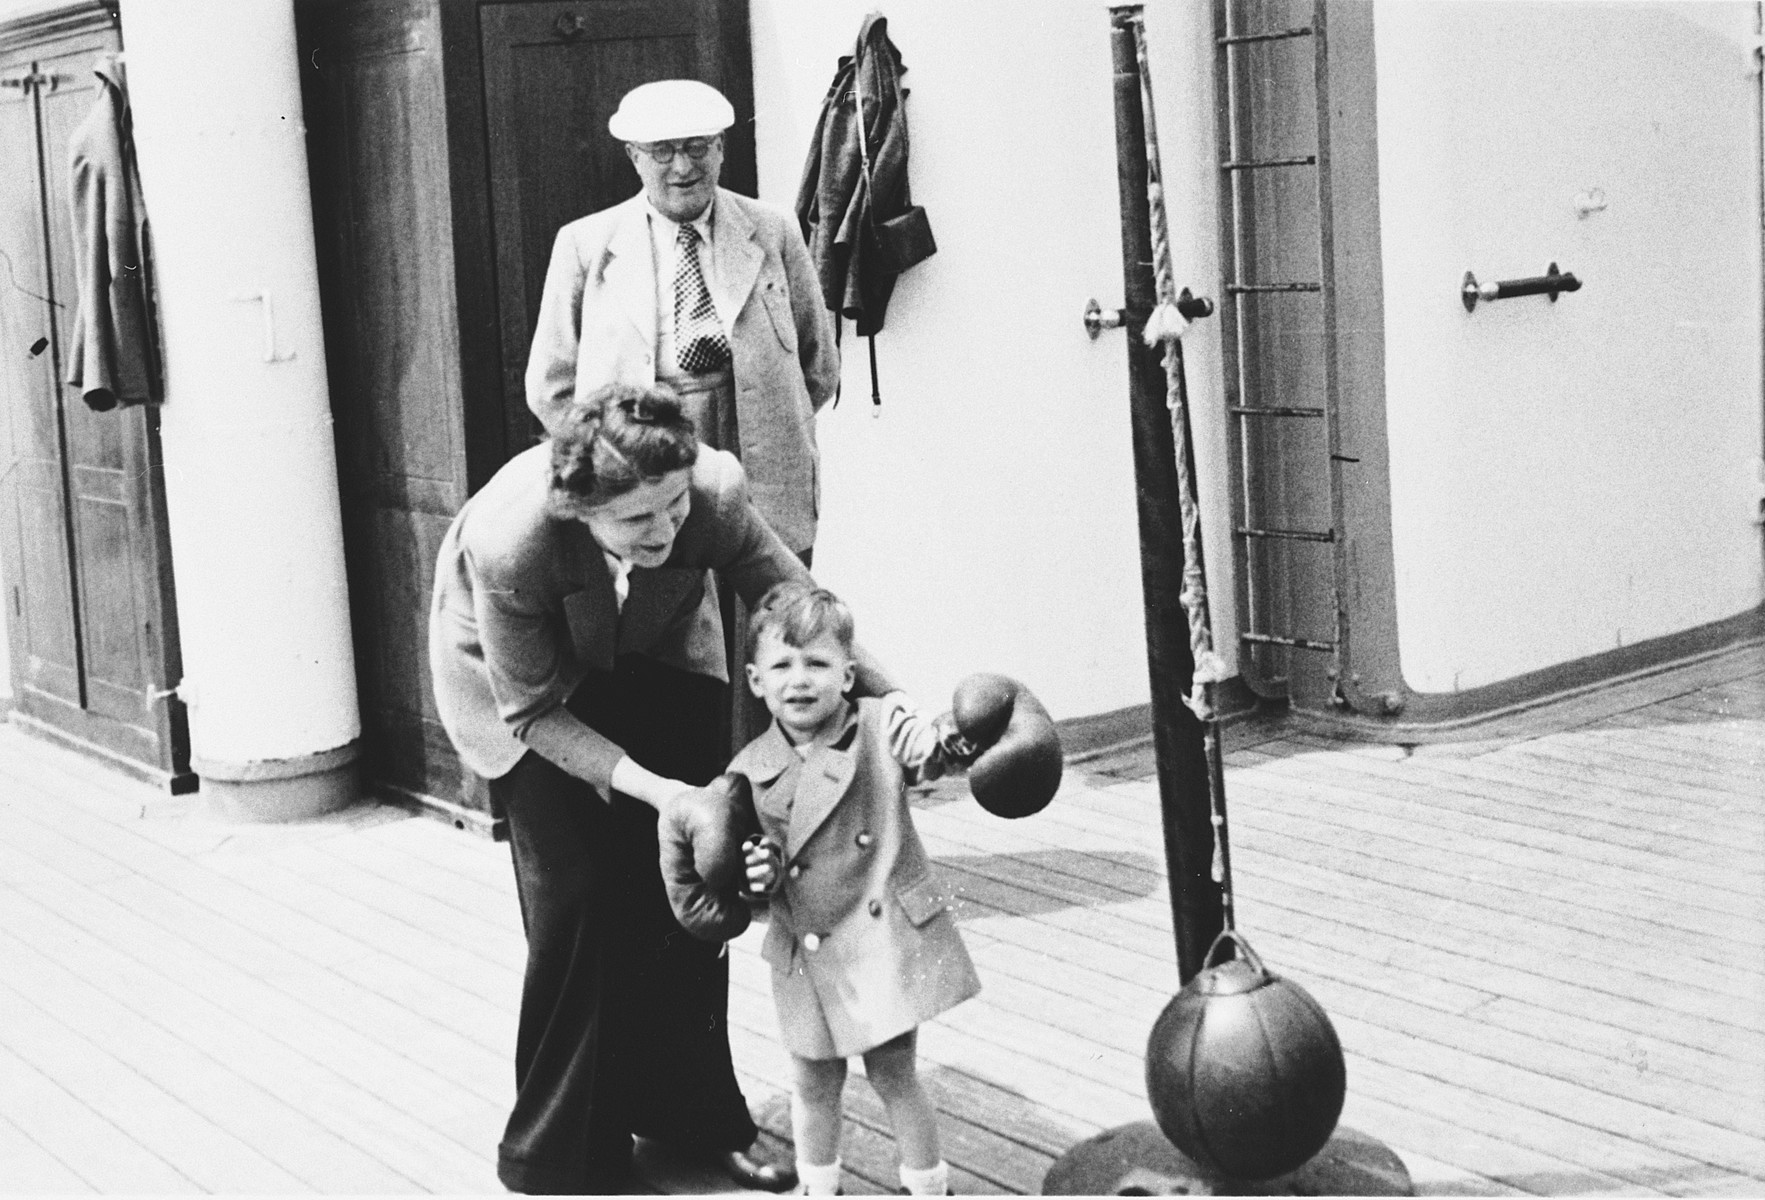 Klara Chraplewski helps her young son play tether ball on board the St. Louis.